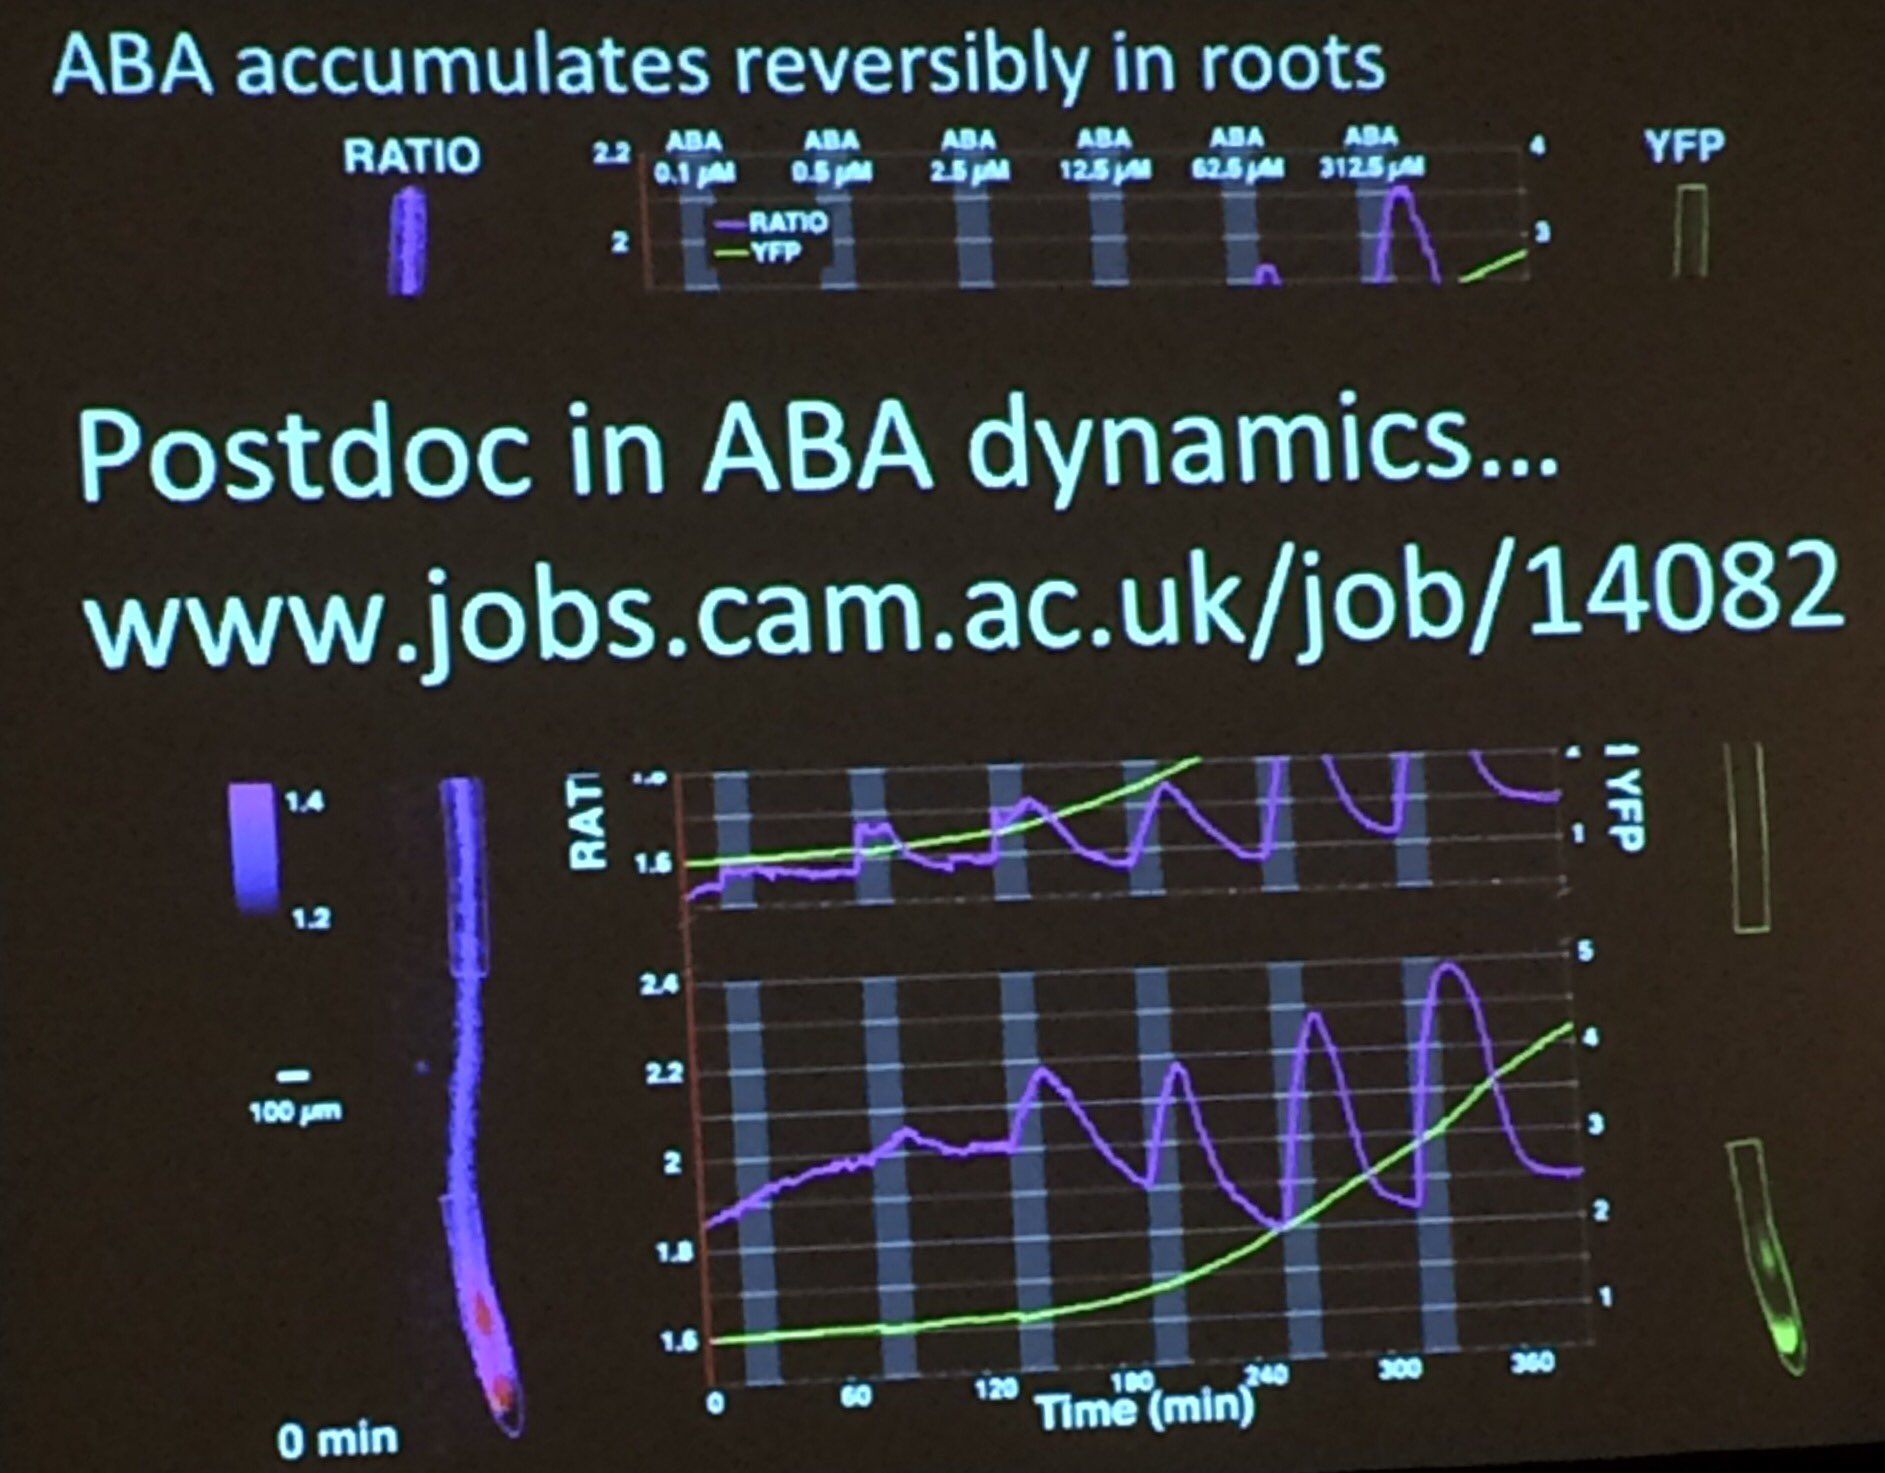 Interested in doing a postdoc with @xanderjones82 on ABA @slcuplants - check this: https://t.co/yRpxTmyC5z #ICAR2017 https://t.co/DClQ91VpxO